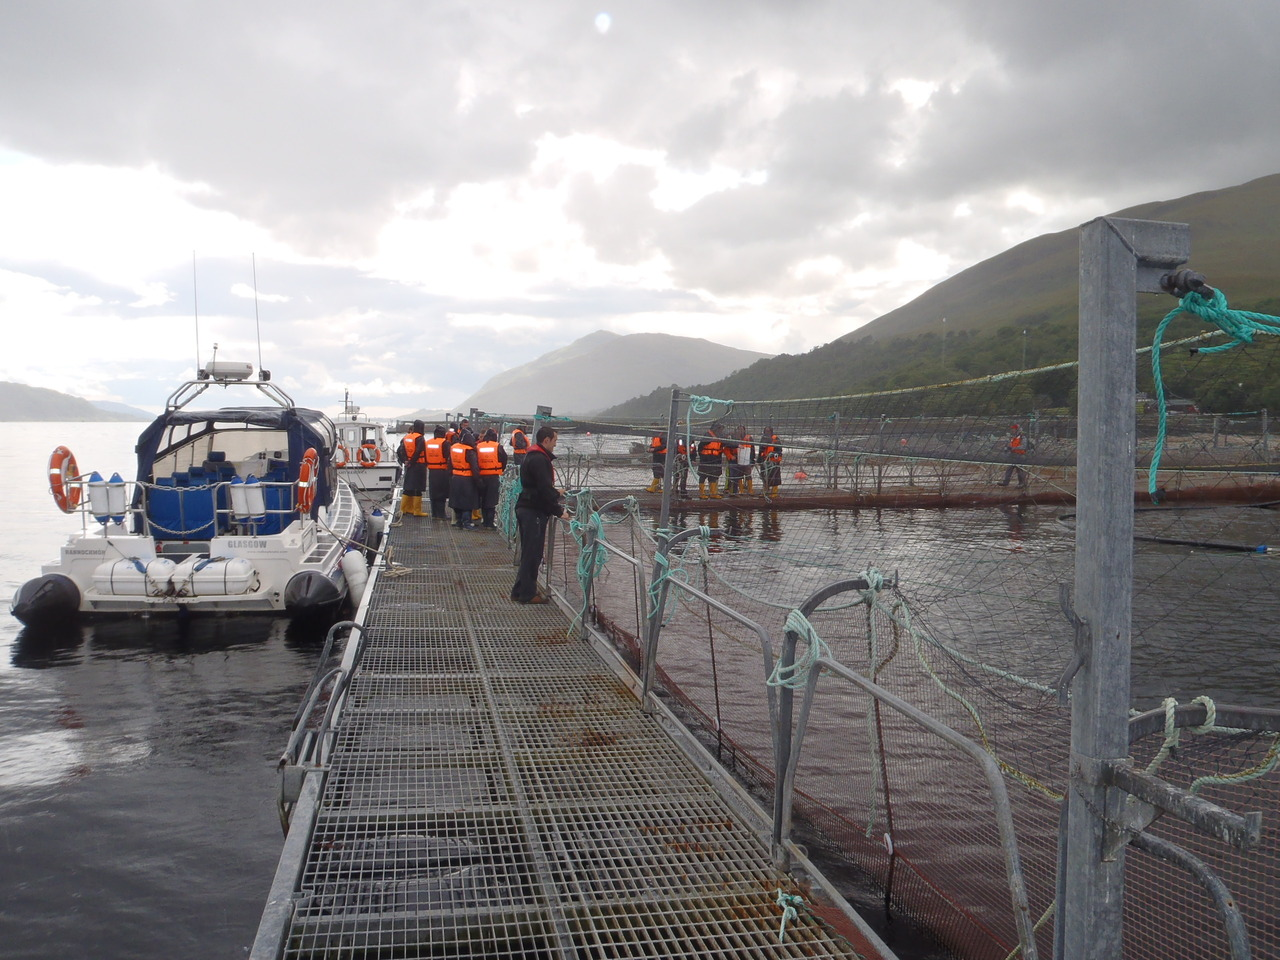 Viewing the Fish Farm in Loch Linnhe